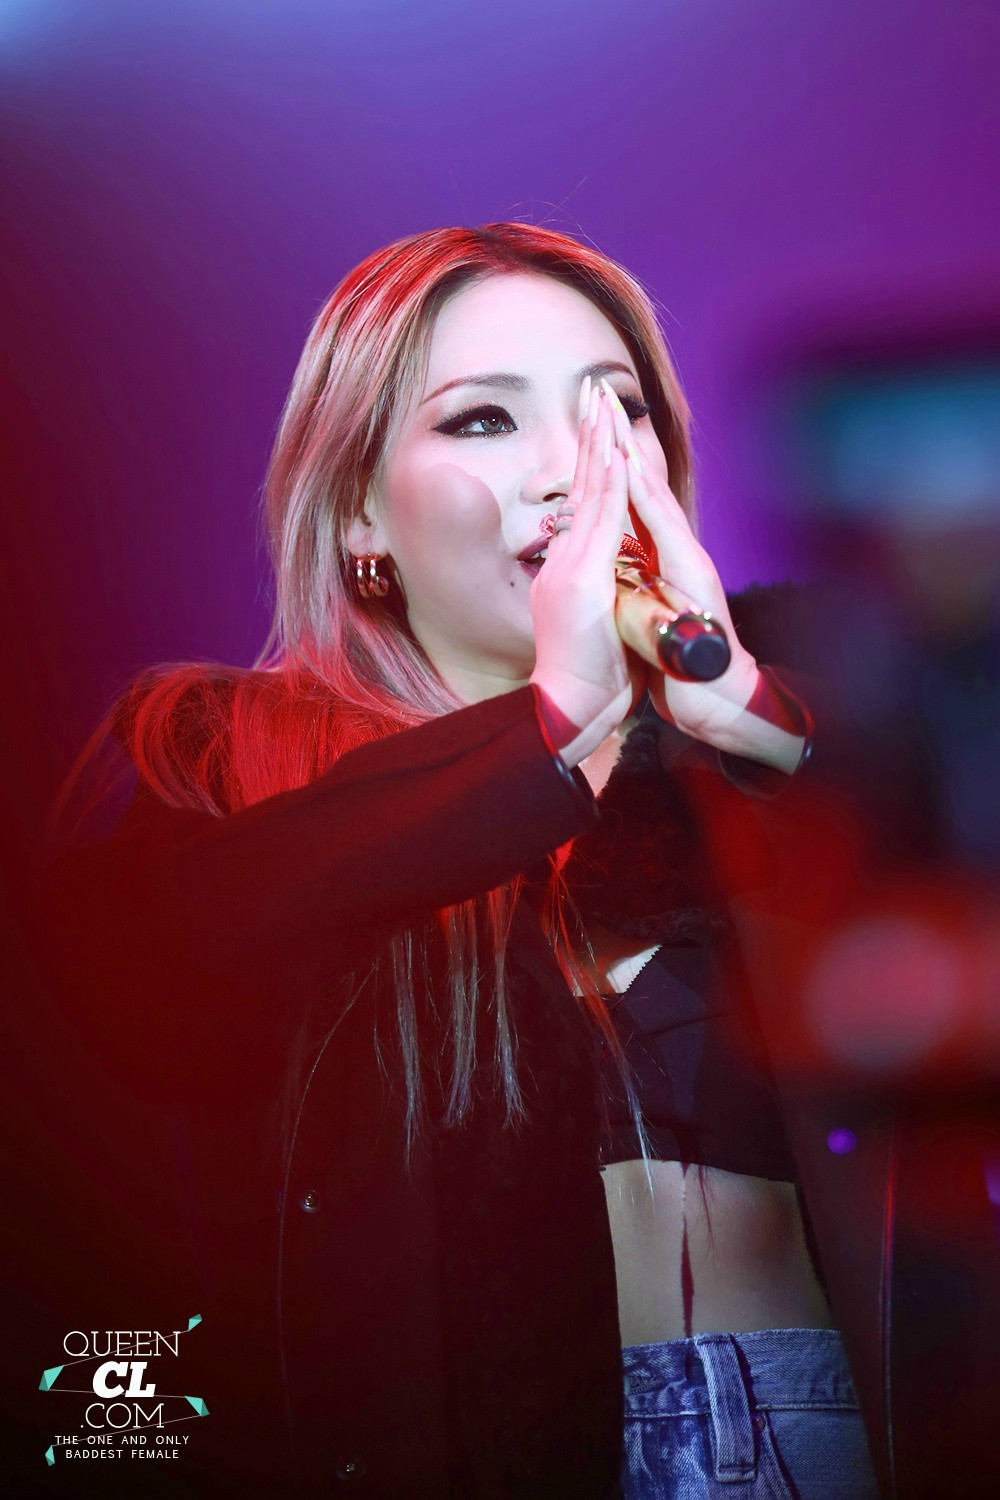 Cl Android Iphone Wallpaper 39098 Asiachan Kpop Image Board